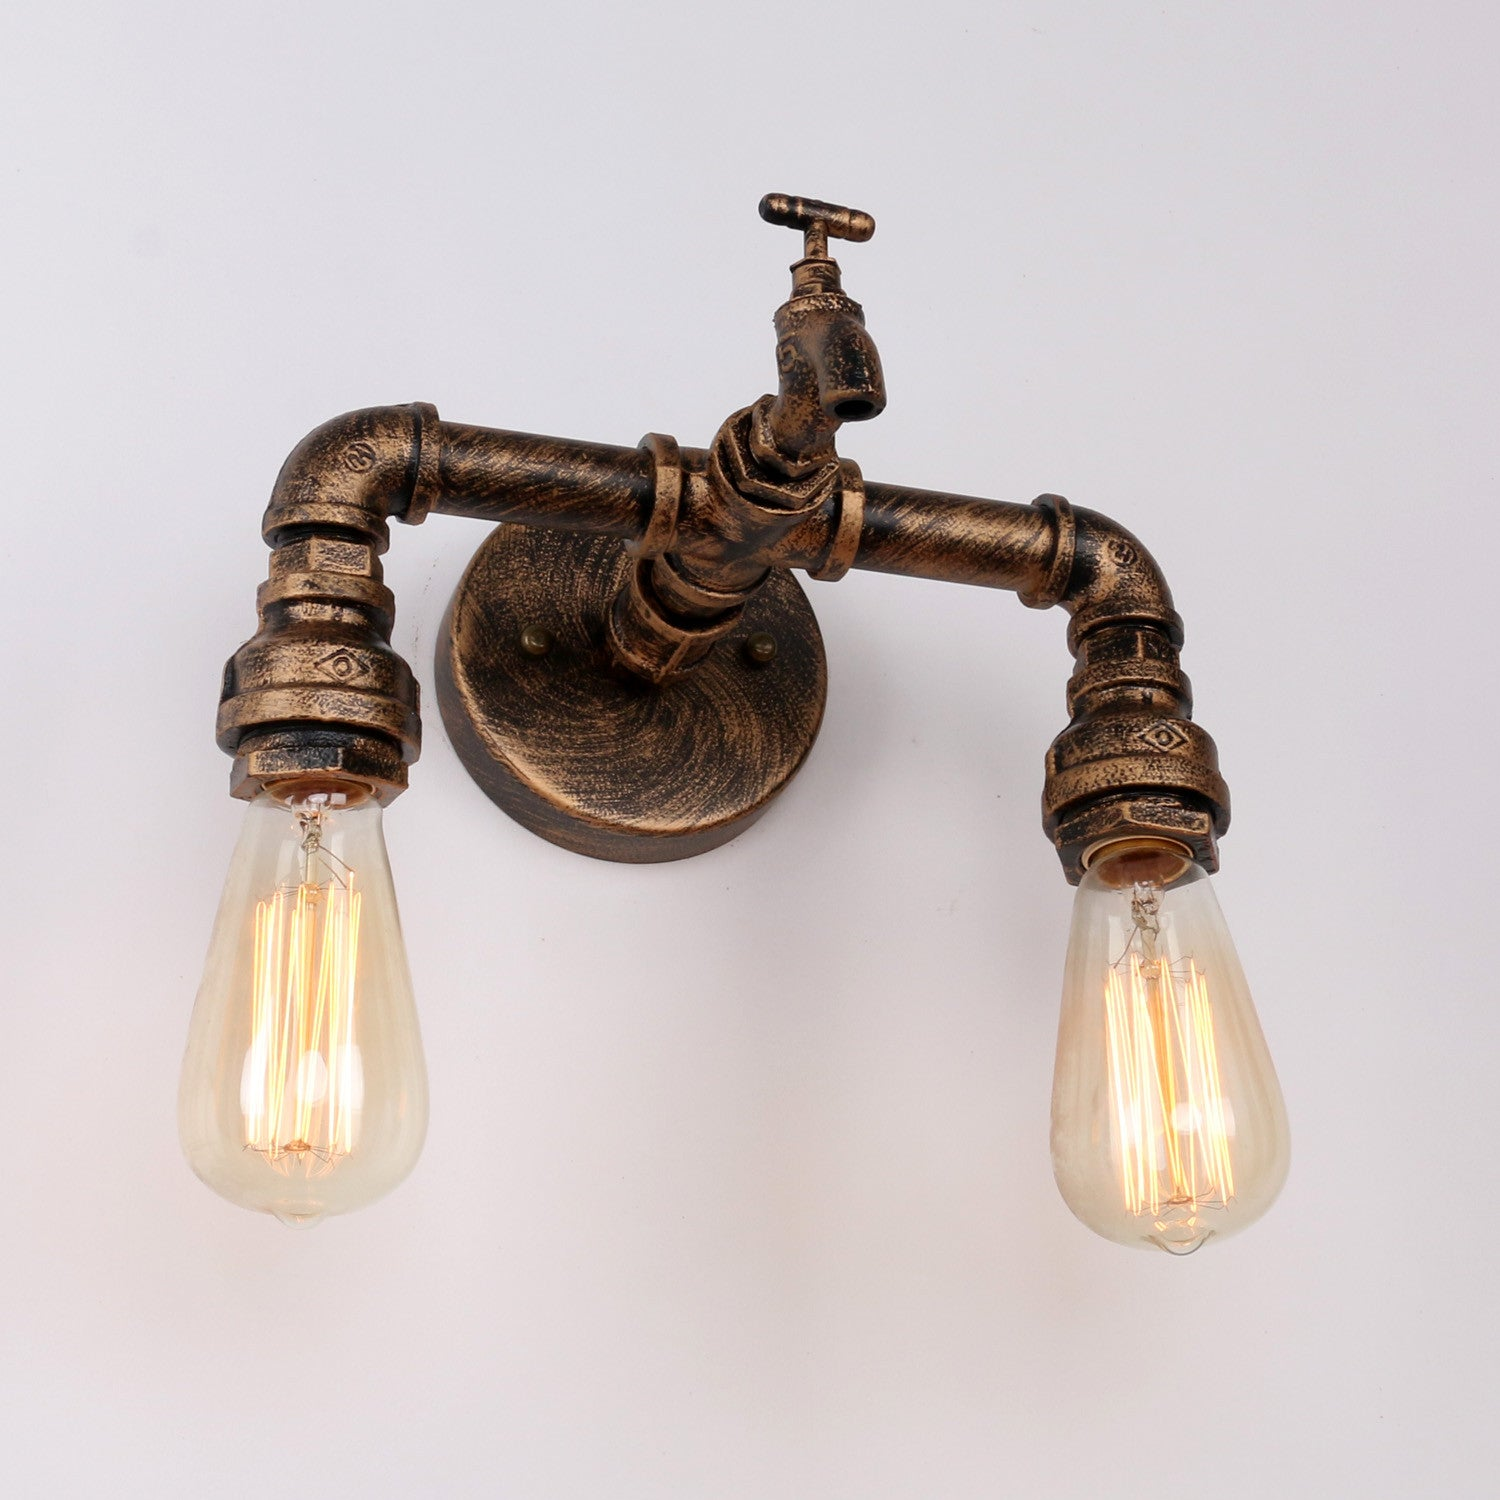 Rustic Copper Pipe Wall Light with 2 Bulb Sockets Wall Sconces